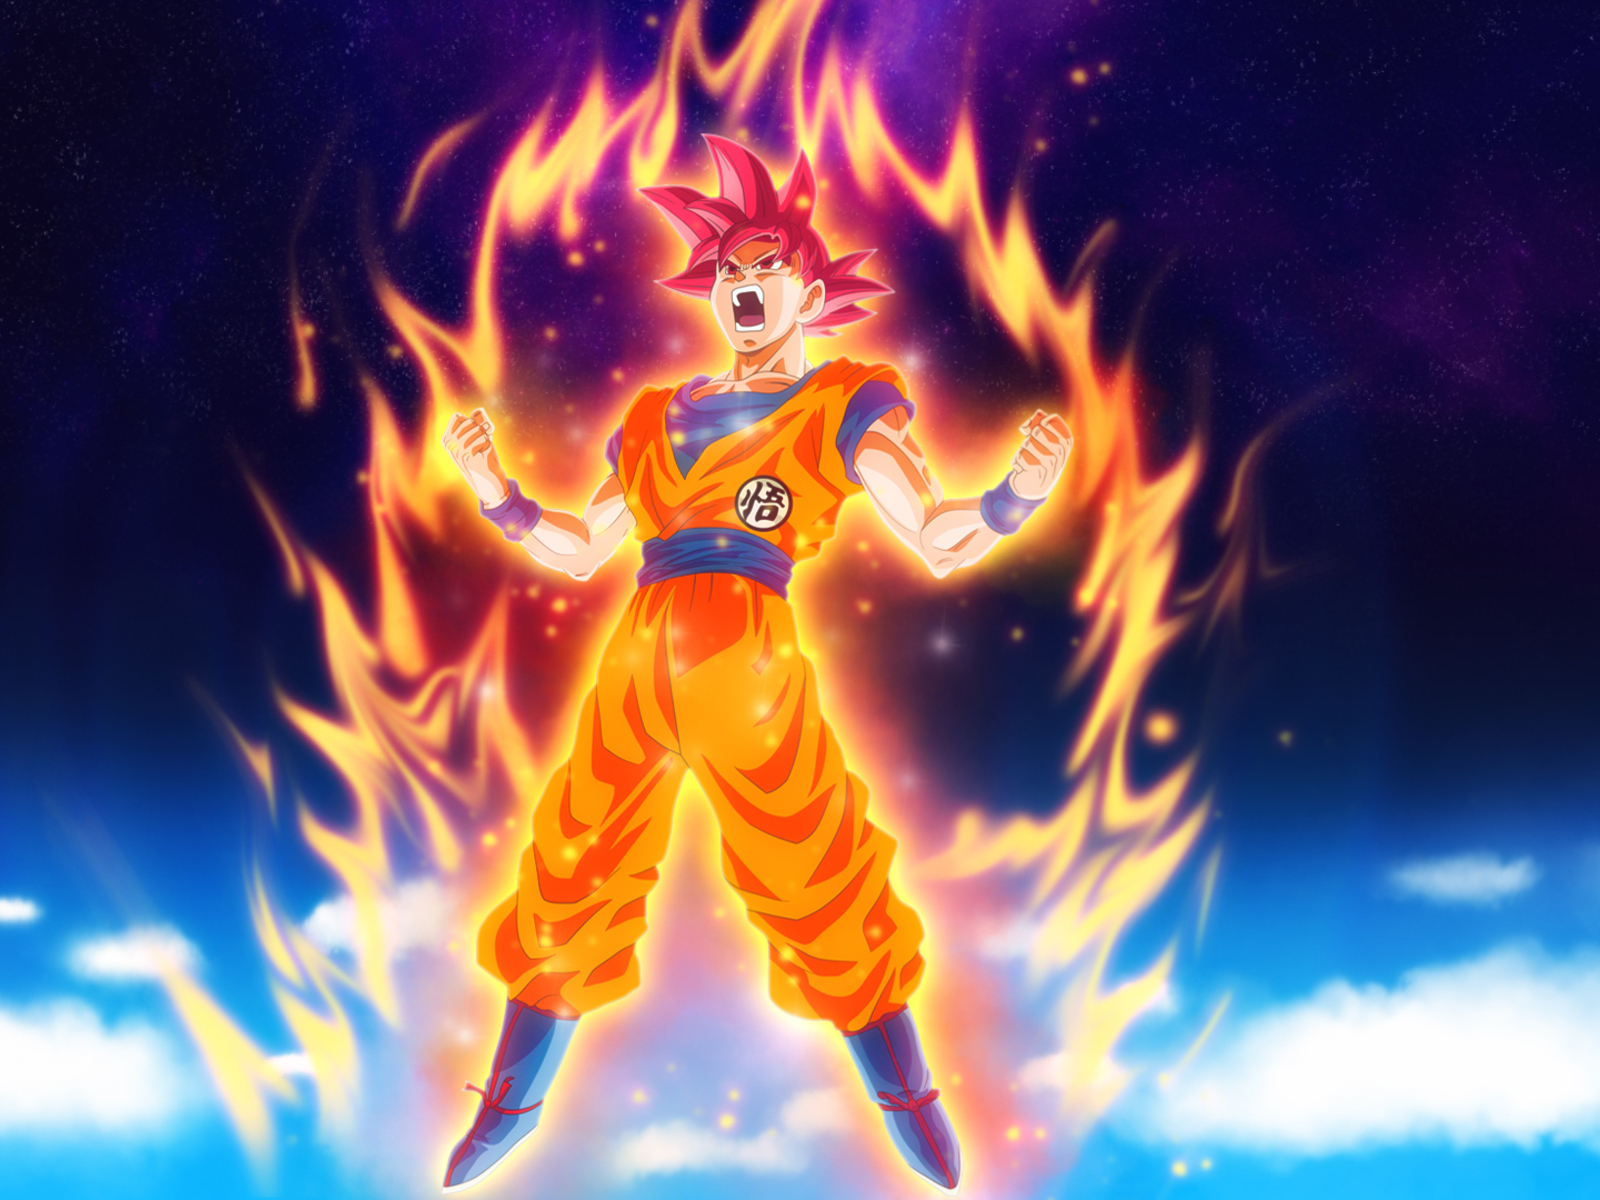 1600x1200 Dragon Ball Z Goku 1600x1200 Resolution Hd 4k Wallpapers Images Backgrounds Photos And Pictures